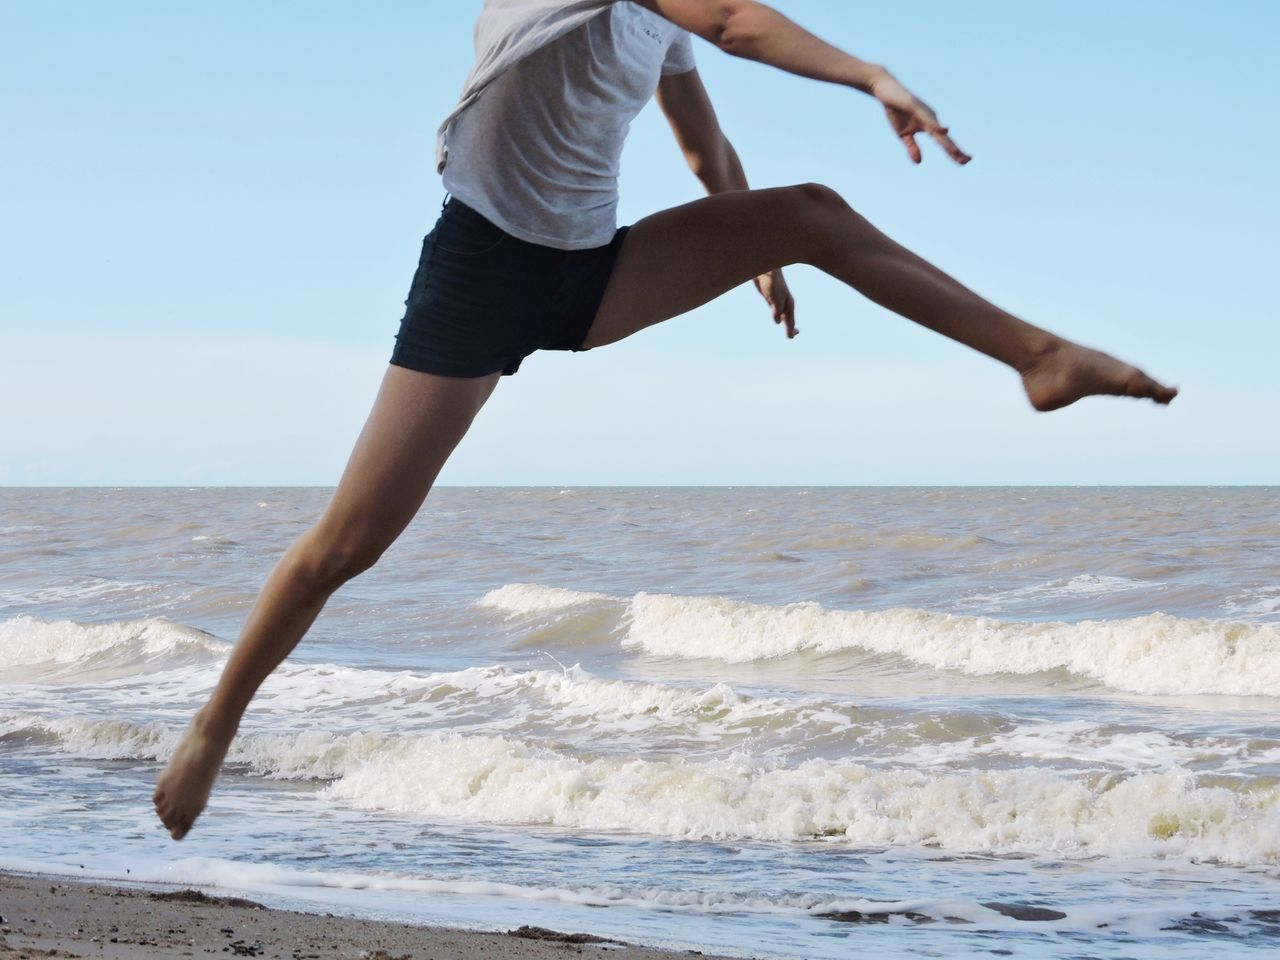 Fitness Woman Slim Motion Sprinting Jumping Running Energy Sports Sport Sea Real People Lifestyles Horizon Over Water Mid-air Beach One Person Full Length The Street Photographer - 2017 EyeEm Awards Clear Sky Day Water Outdoors Nature Sky